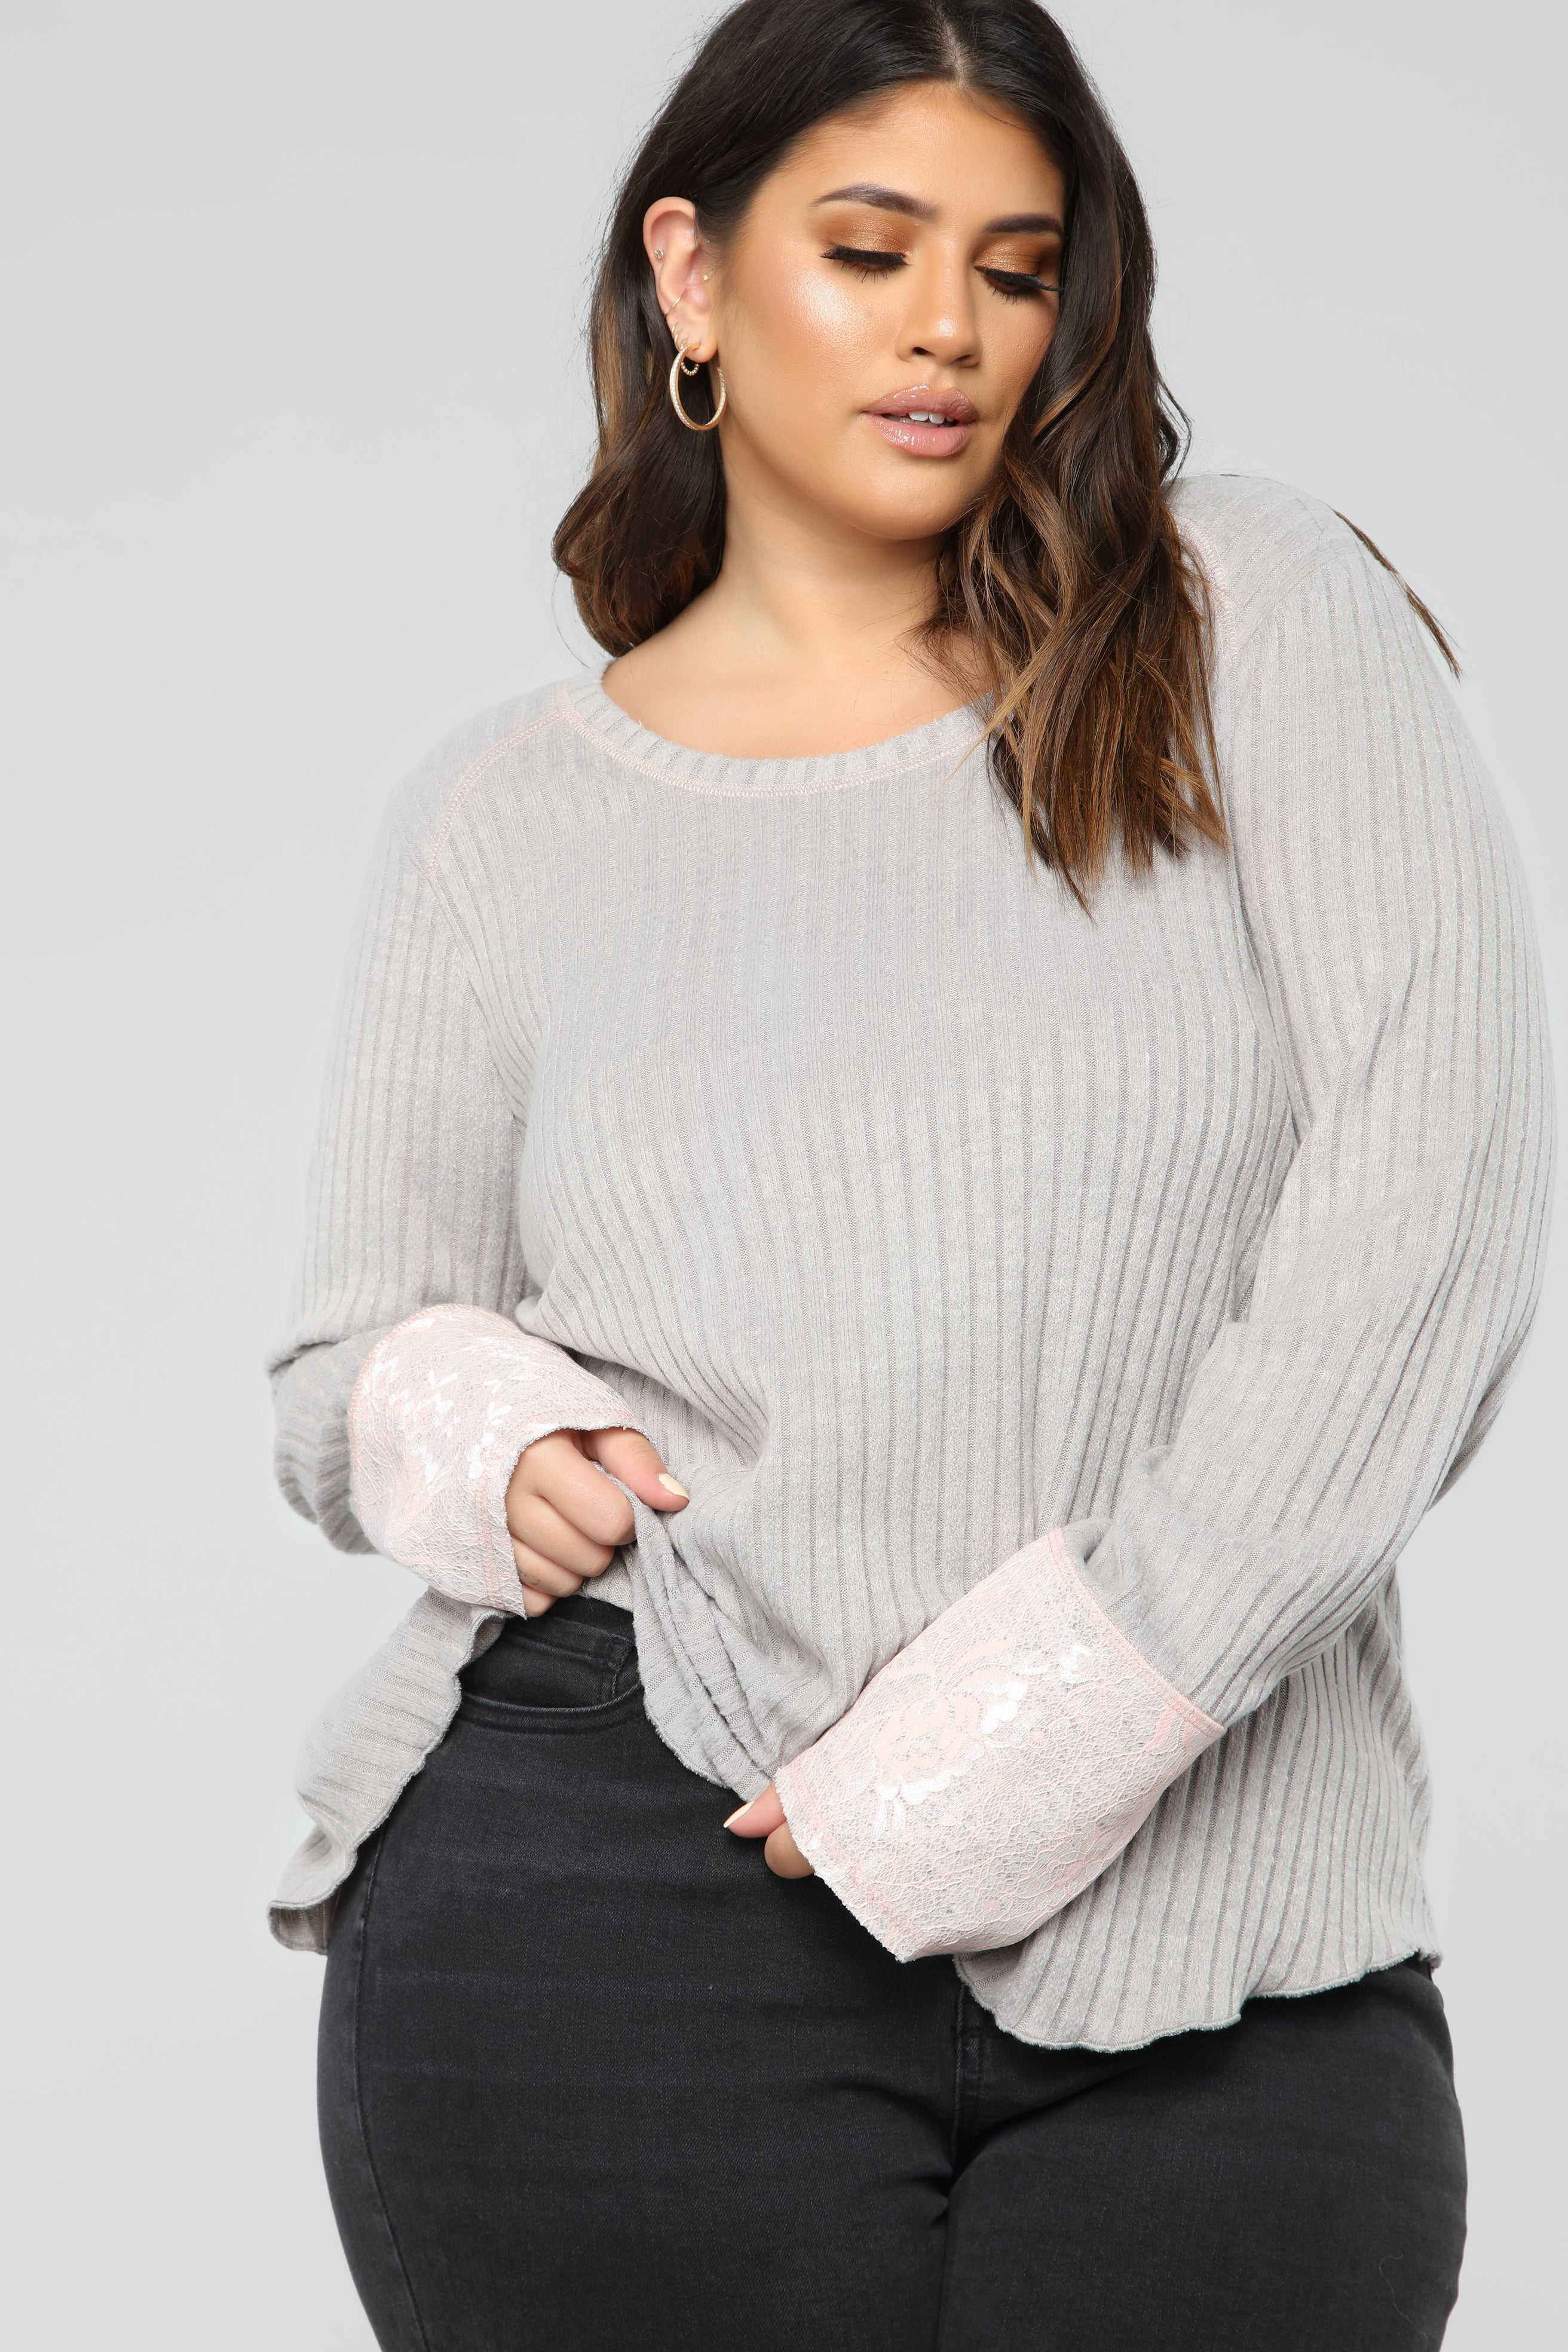 e94722ae17cad All Or Nothing Sweater - Off White. 8. SKU  WKT1100 OffWhite XS.  24.99   19.98. Amber Long Sleeve Top - Grey